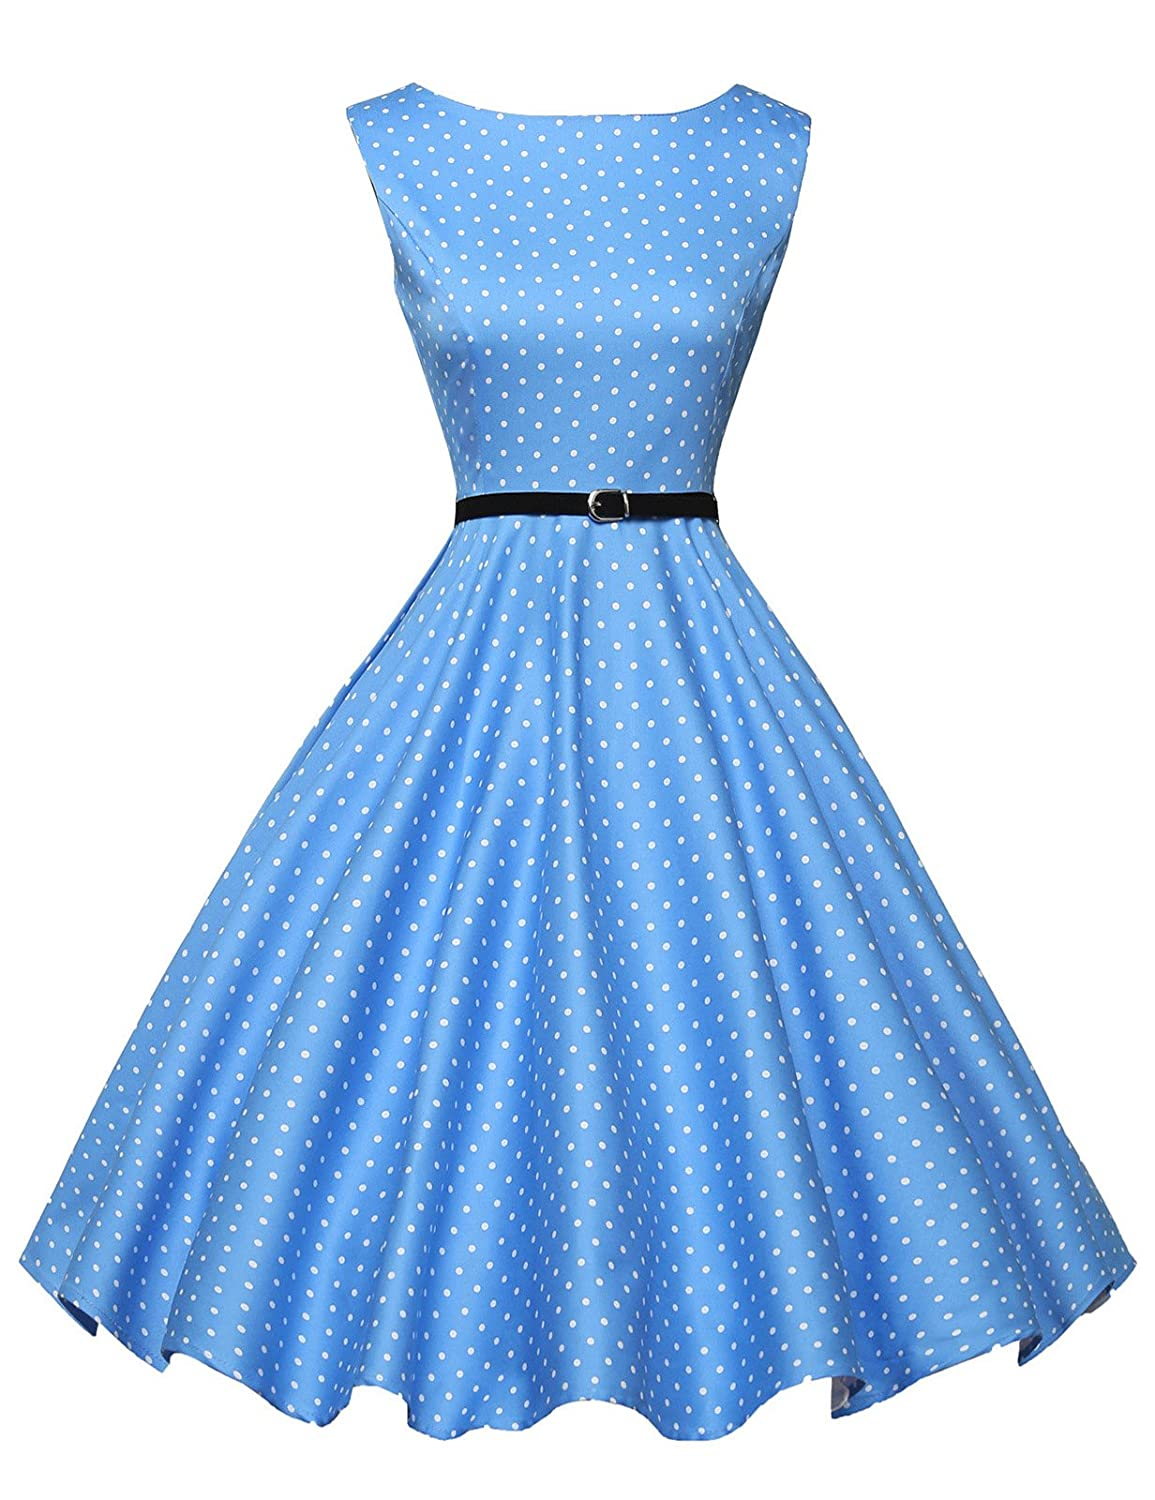 1940s Pinup Dresses for Sale GRACE KARIN BoatNeck Sleeveless Vintage Tea Dress with Belt $30.99 AT vintagedancer.com